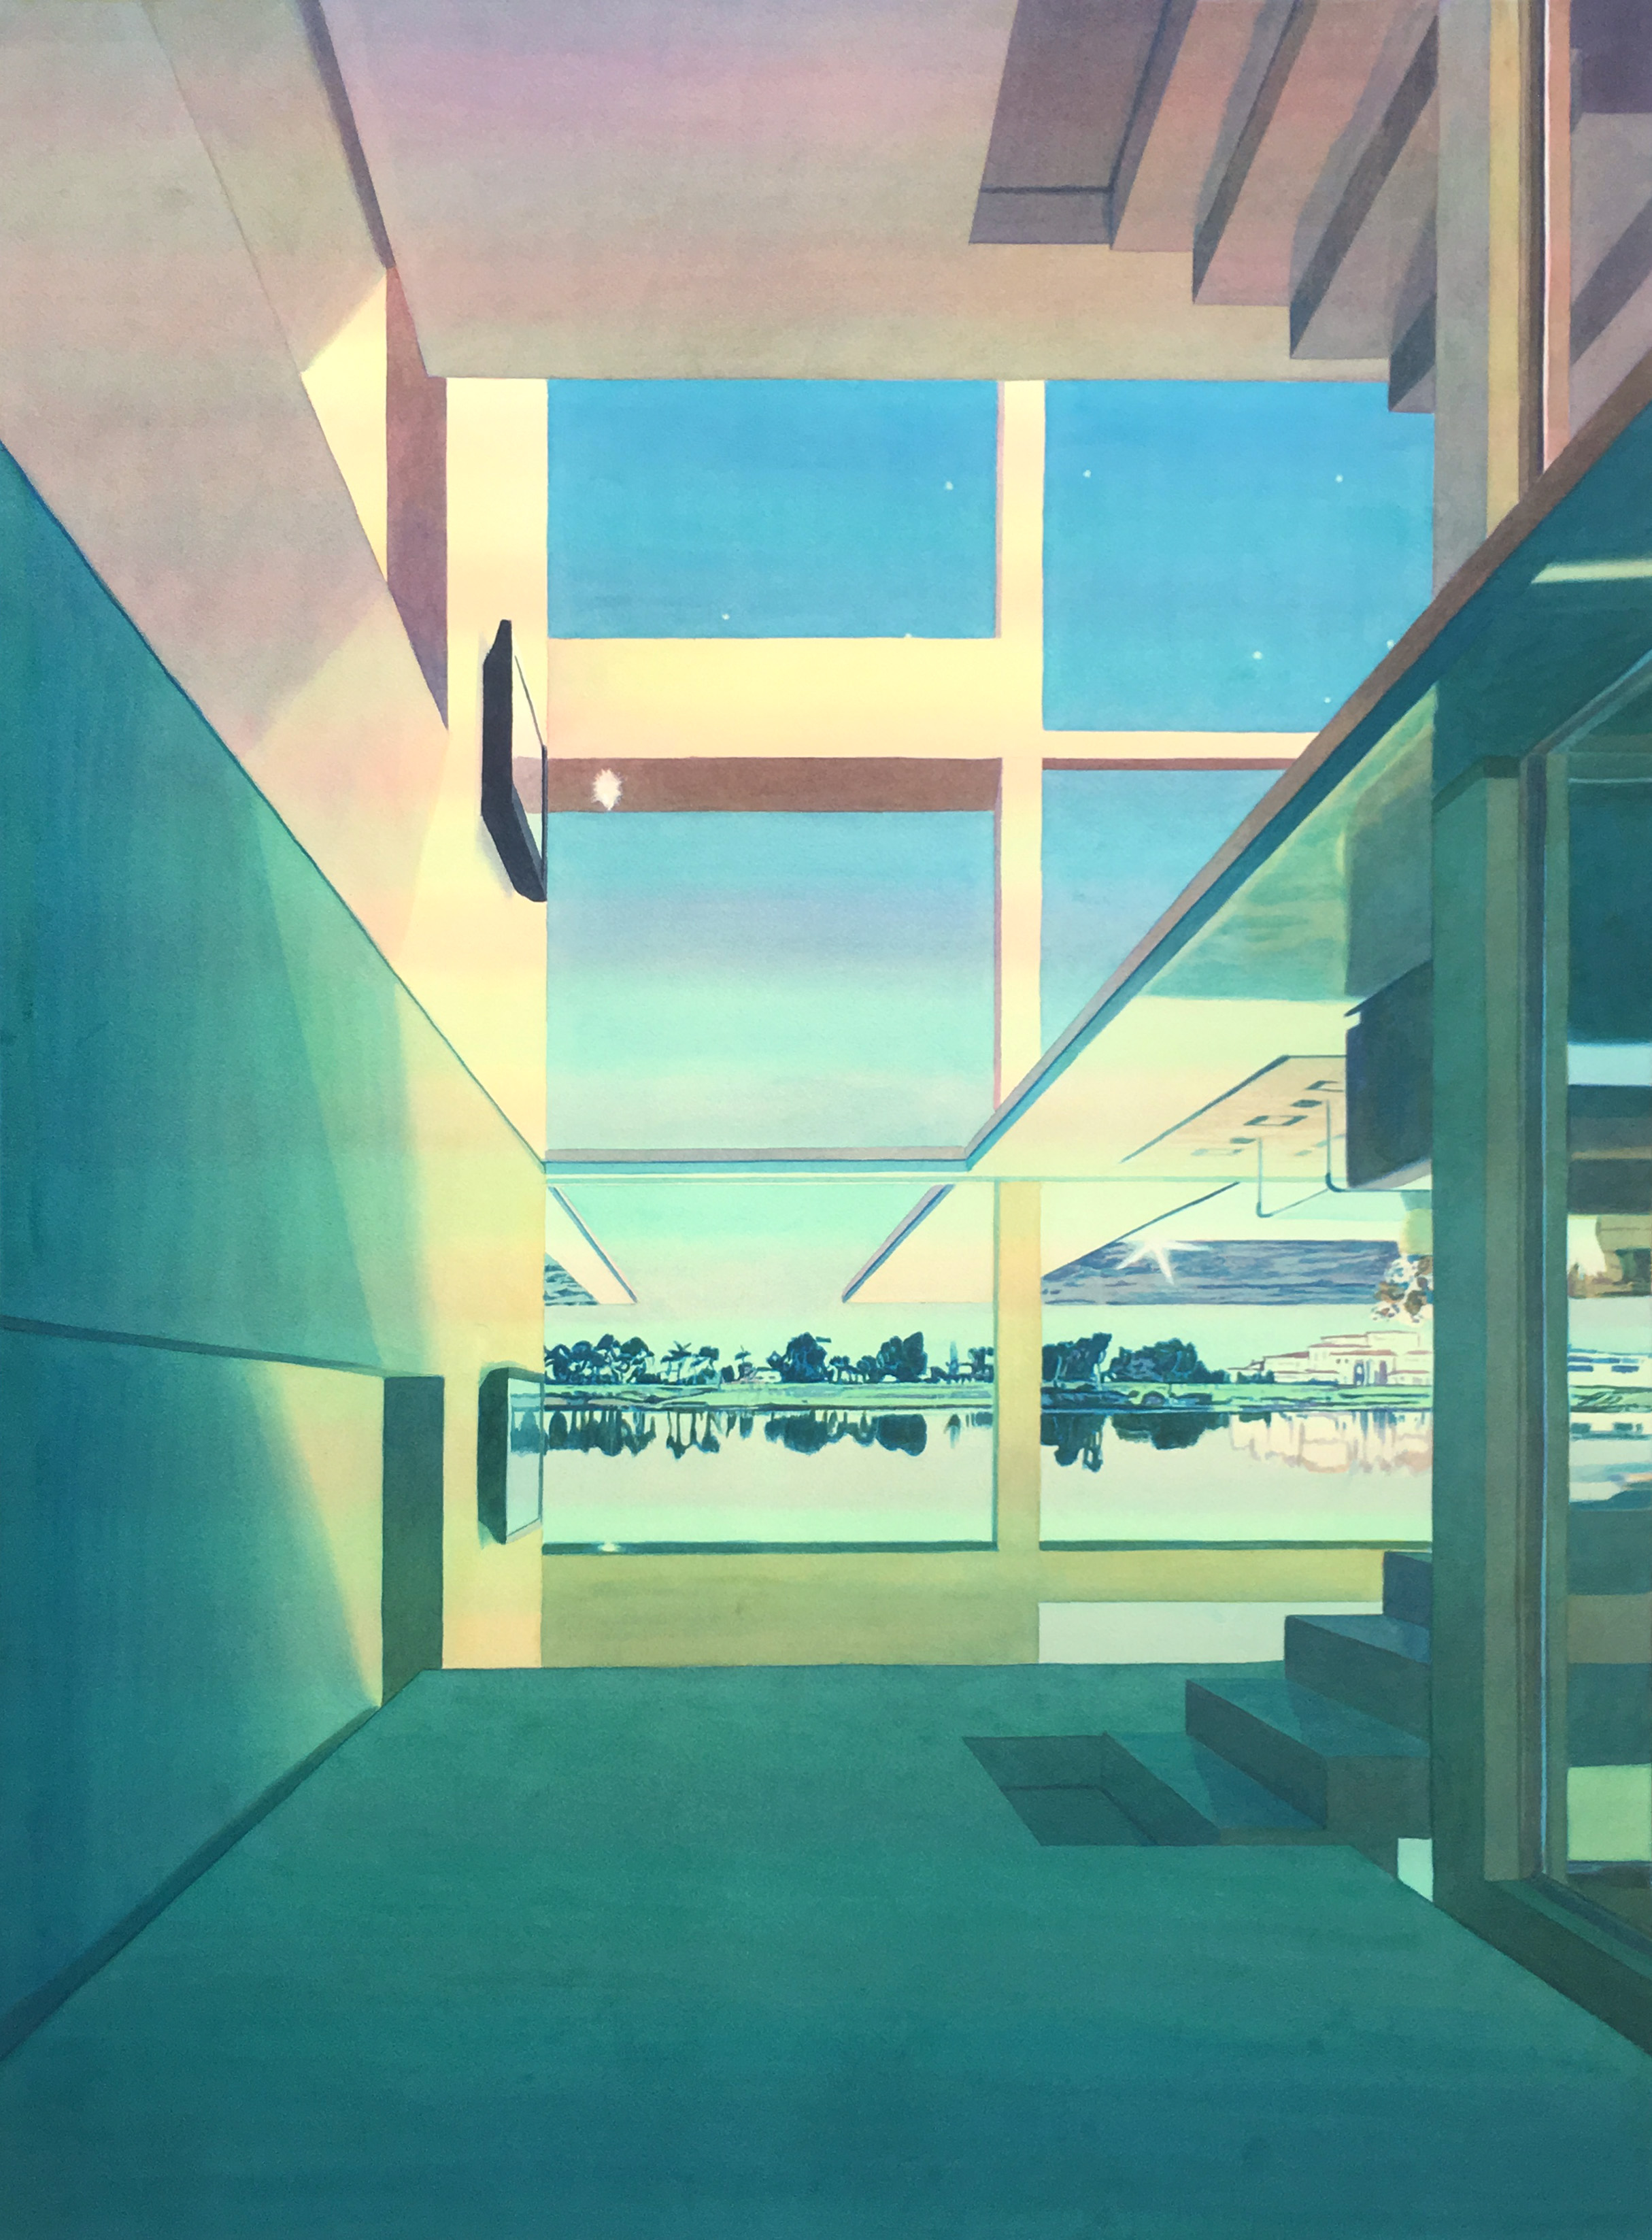 """Tristram Lansdowne,  Vacation Home III , 2018, watercolour on paper in artist frame, 36"""" x 26"""" (91.5 x 66 cm)"""